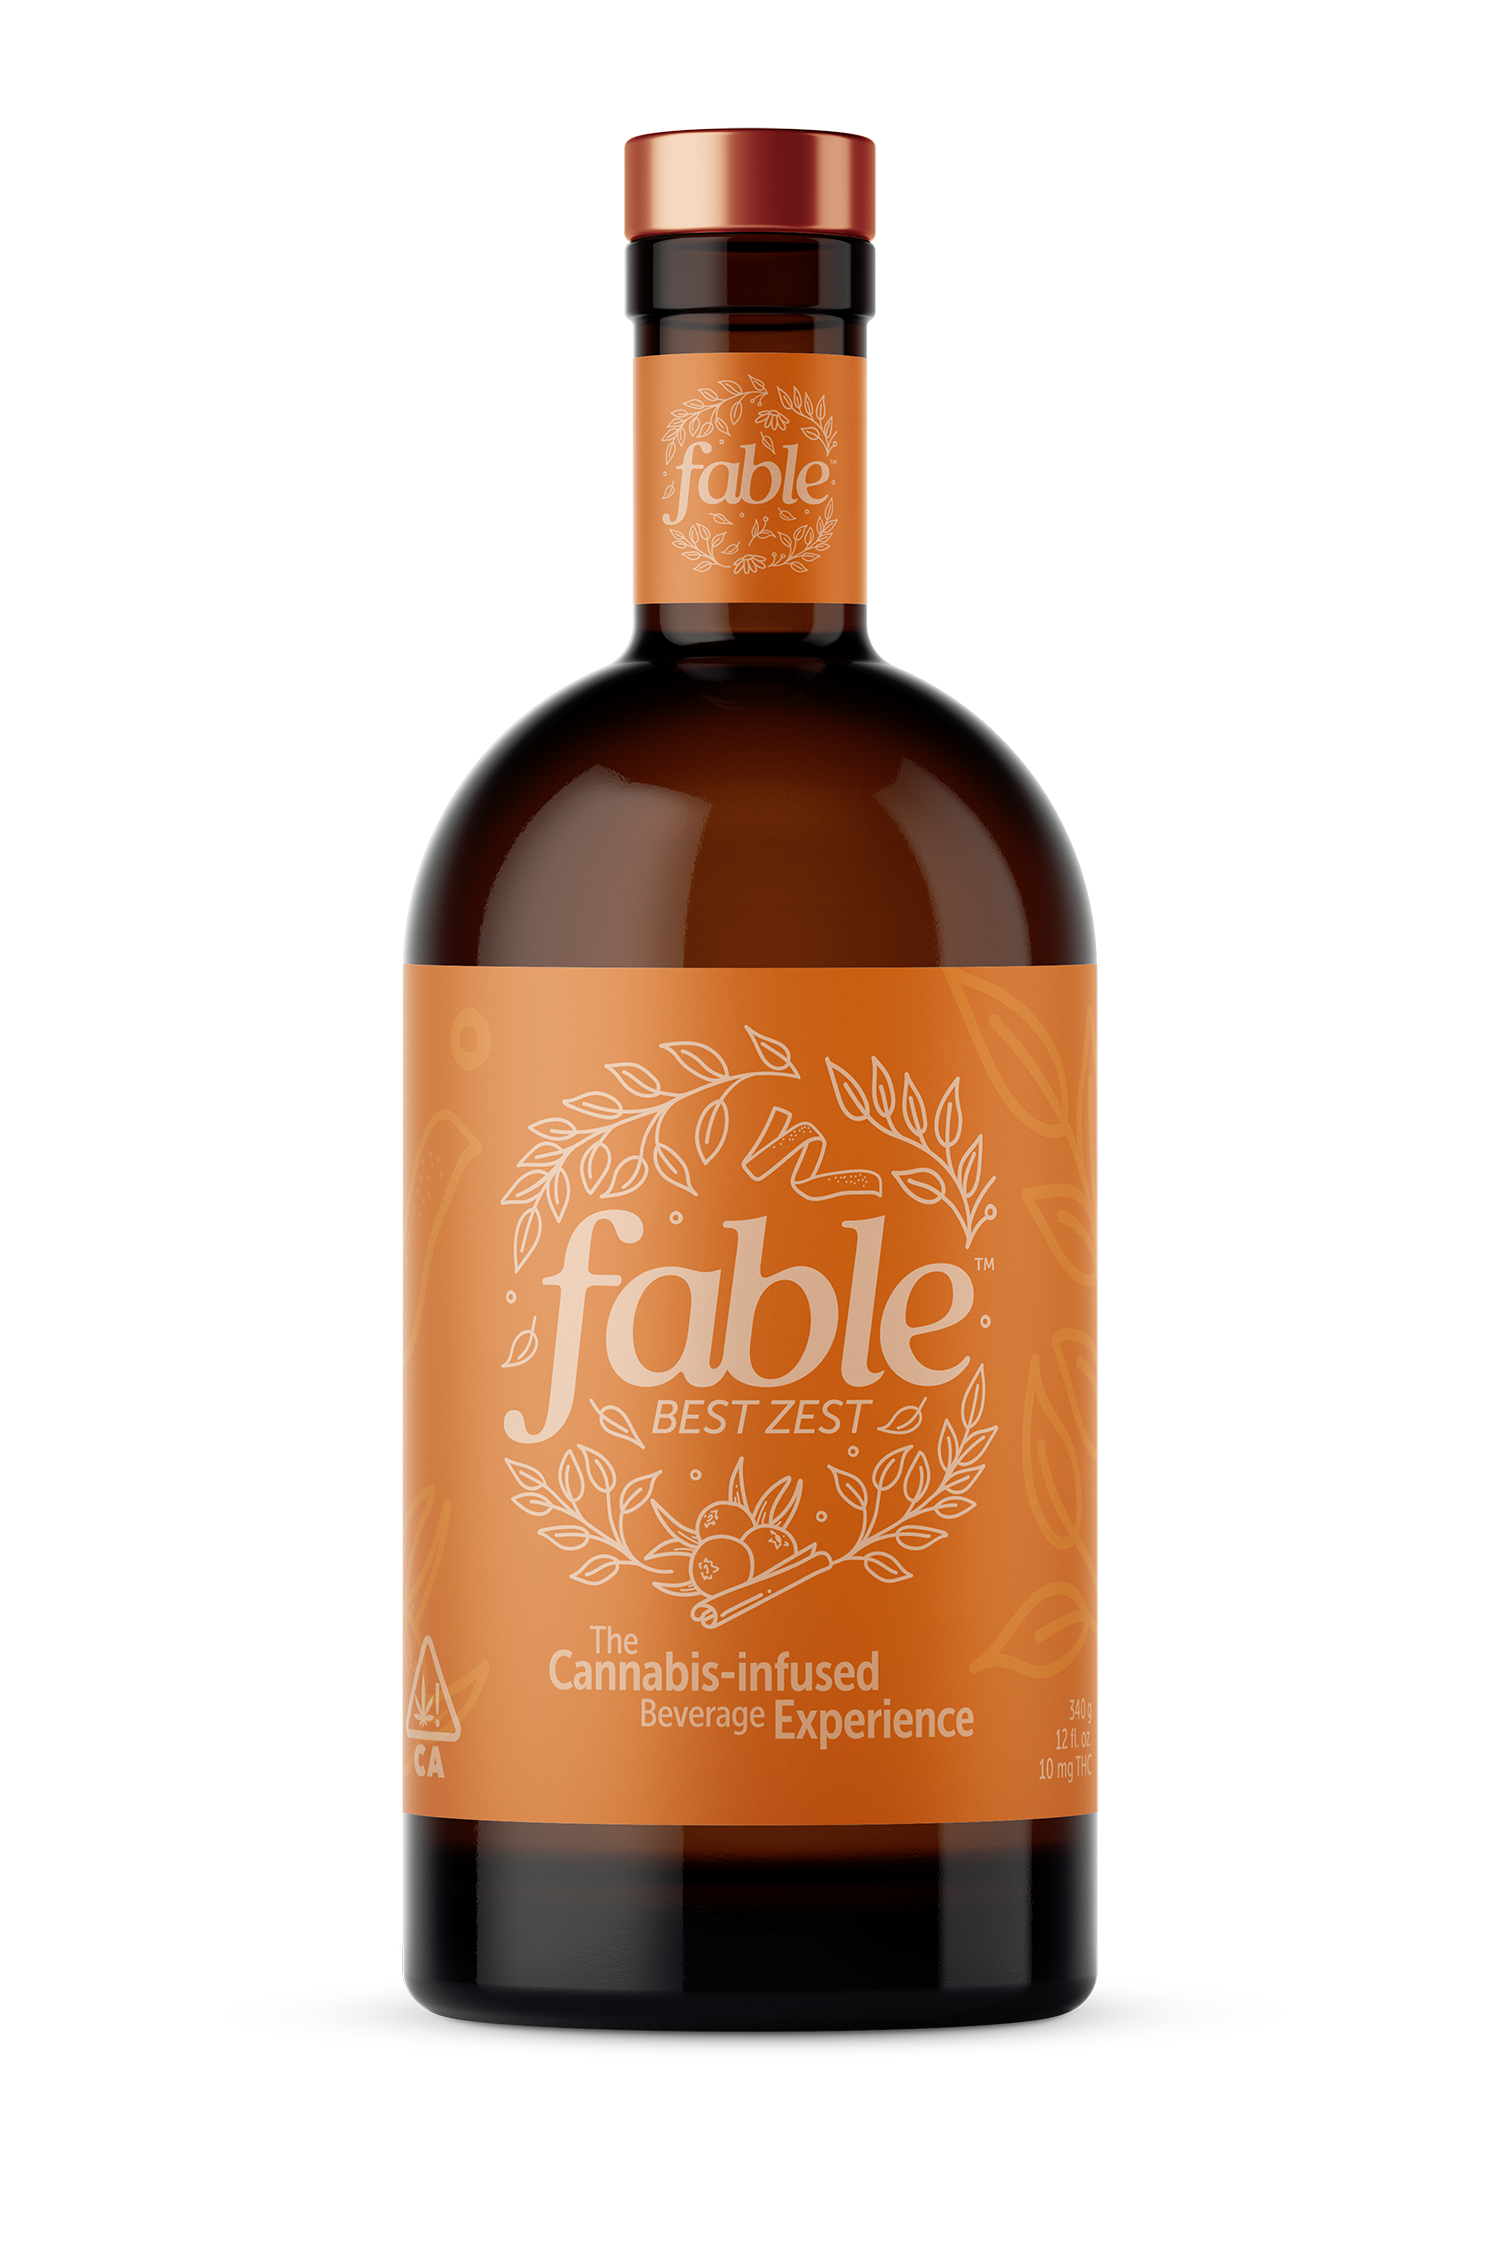 A vibrant, citrus nose with fresh, herbal undertones. While a bouquet of grapefruit, orange, and lime open, cinnamon and cardamom finish with warmth.